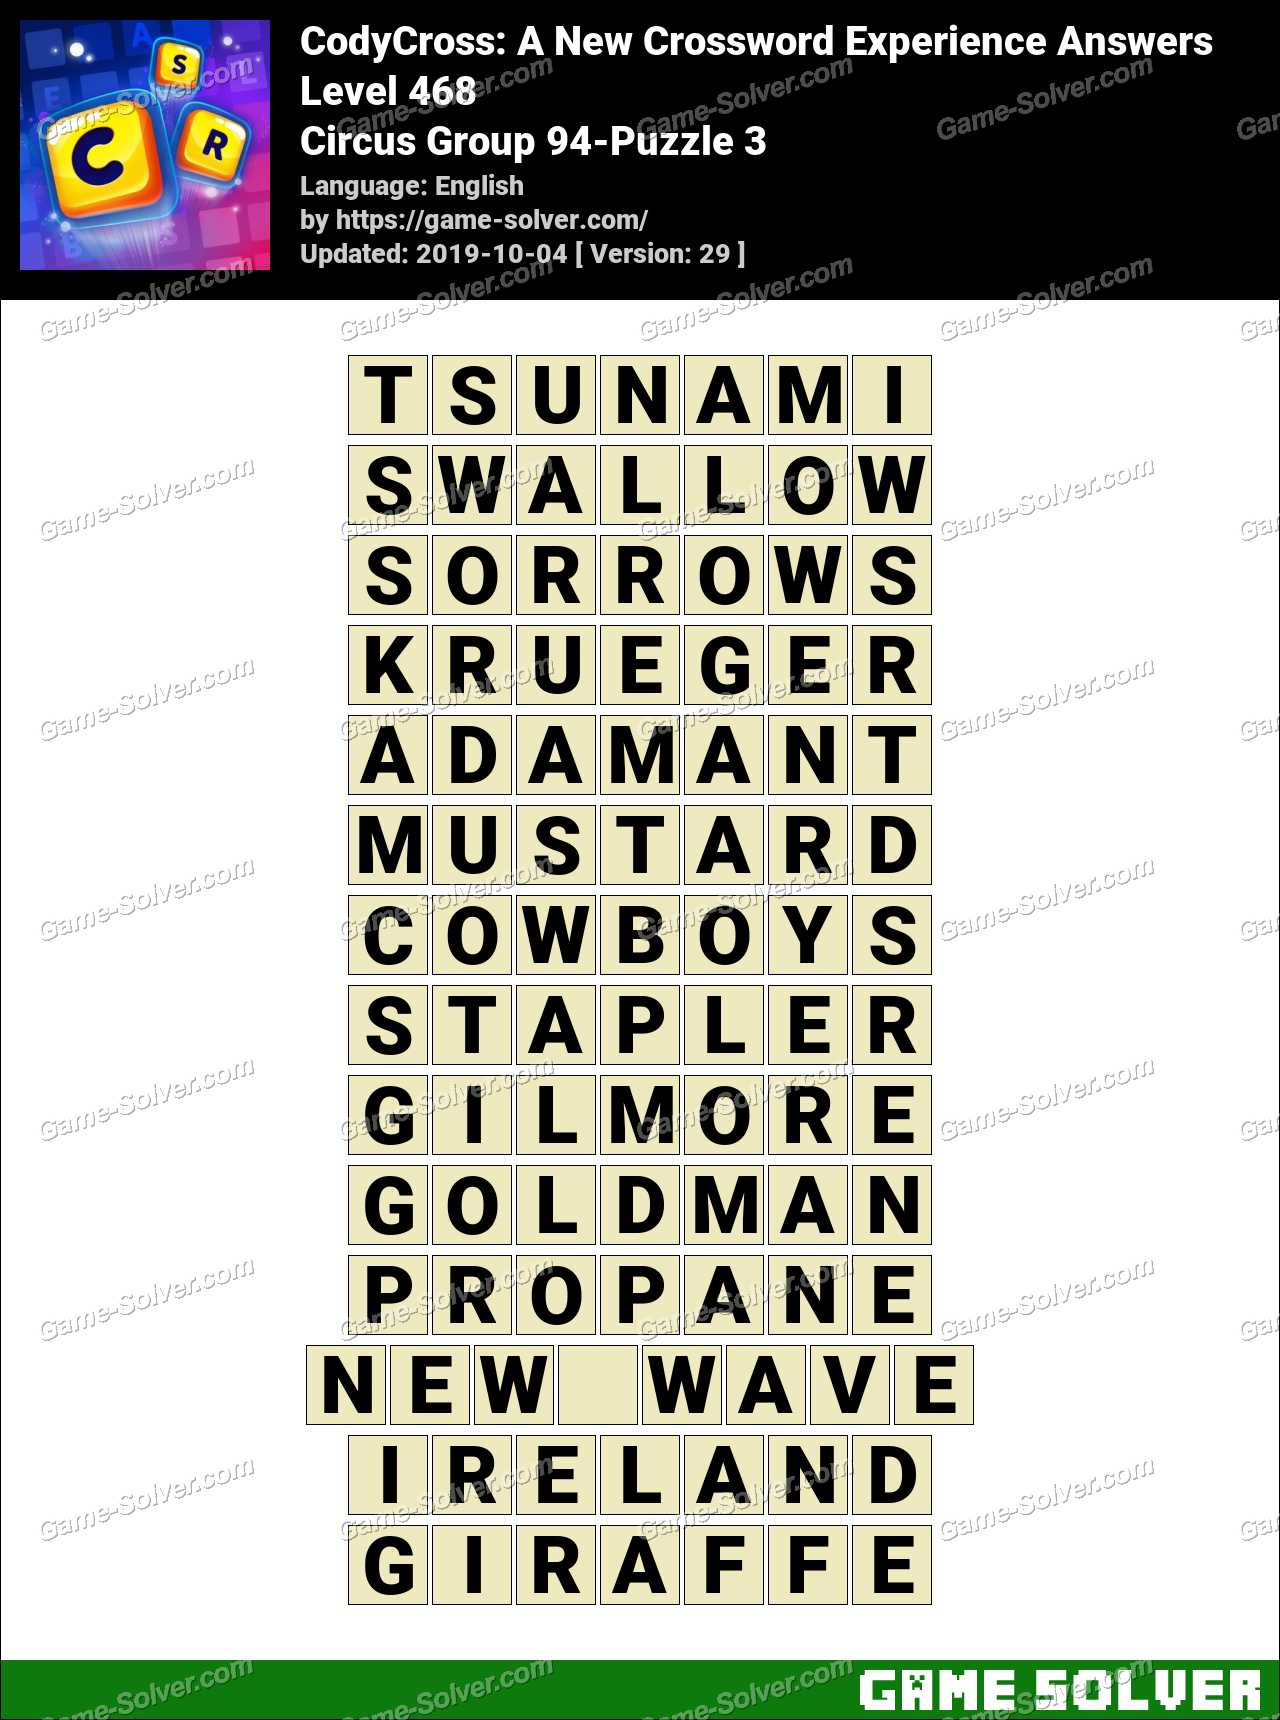 CodyCross Circus Group 94-Puzzle 3 Answers